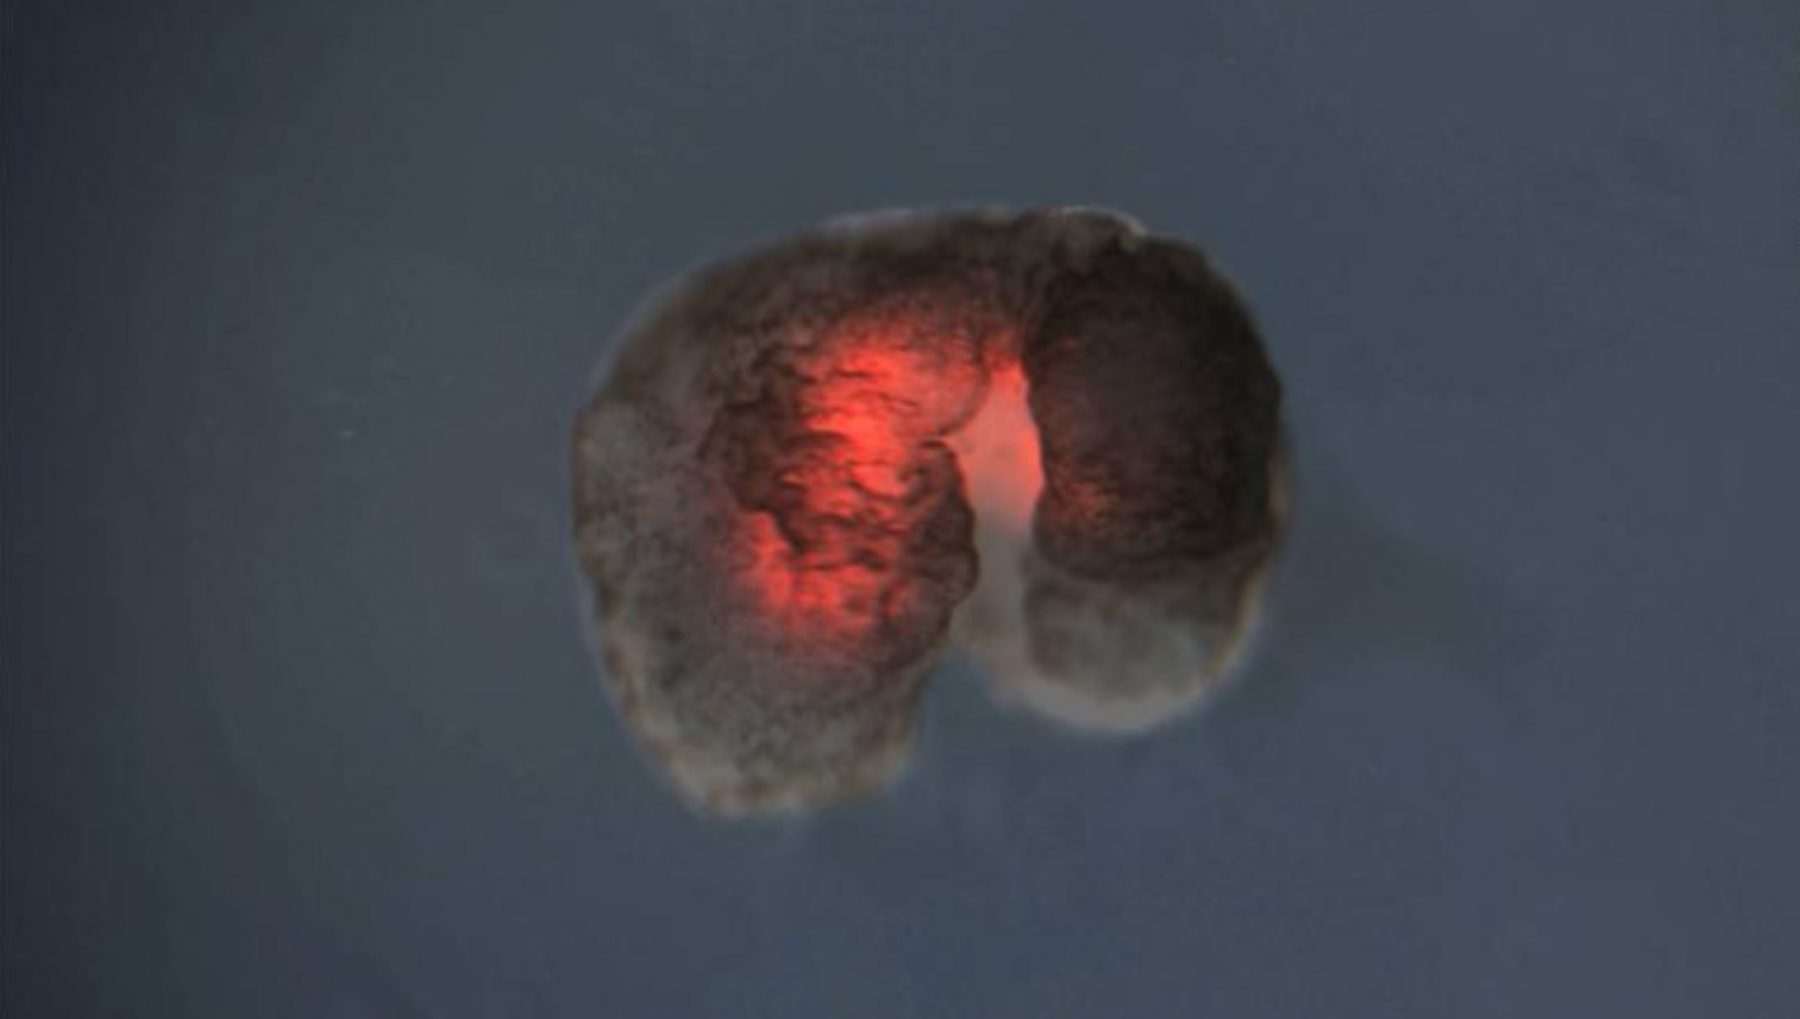 This image shows a Xenobot with a red heart muscle. Image Credit: Douglas Blackiston.